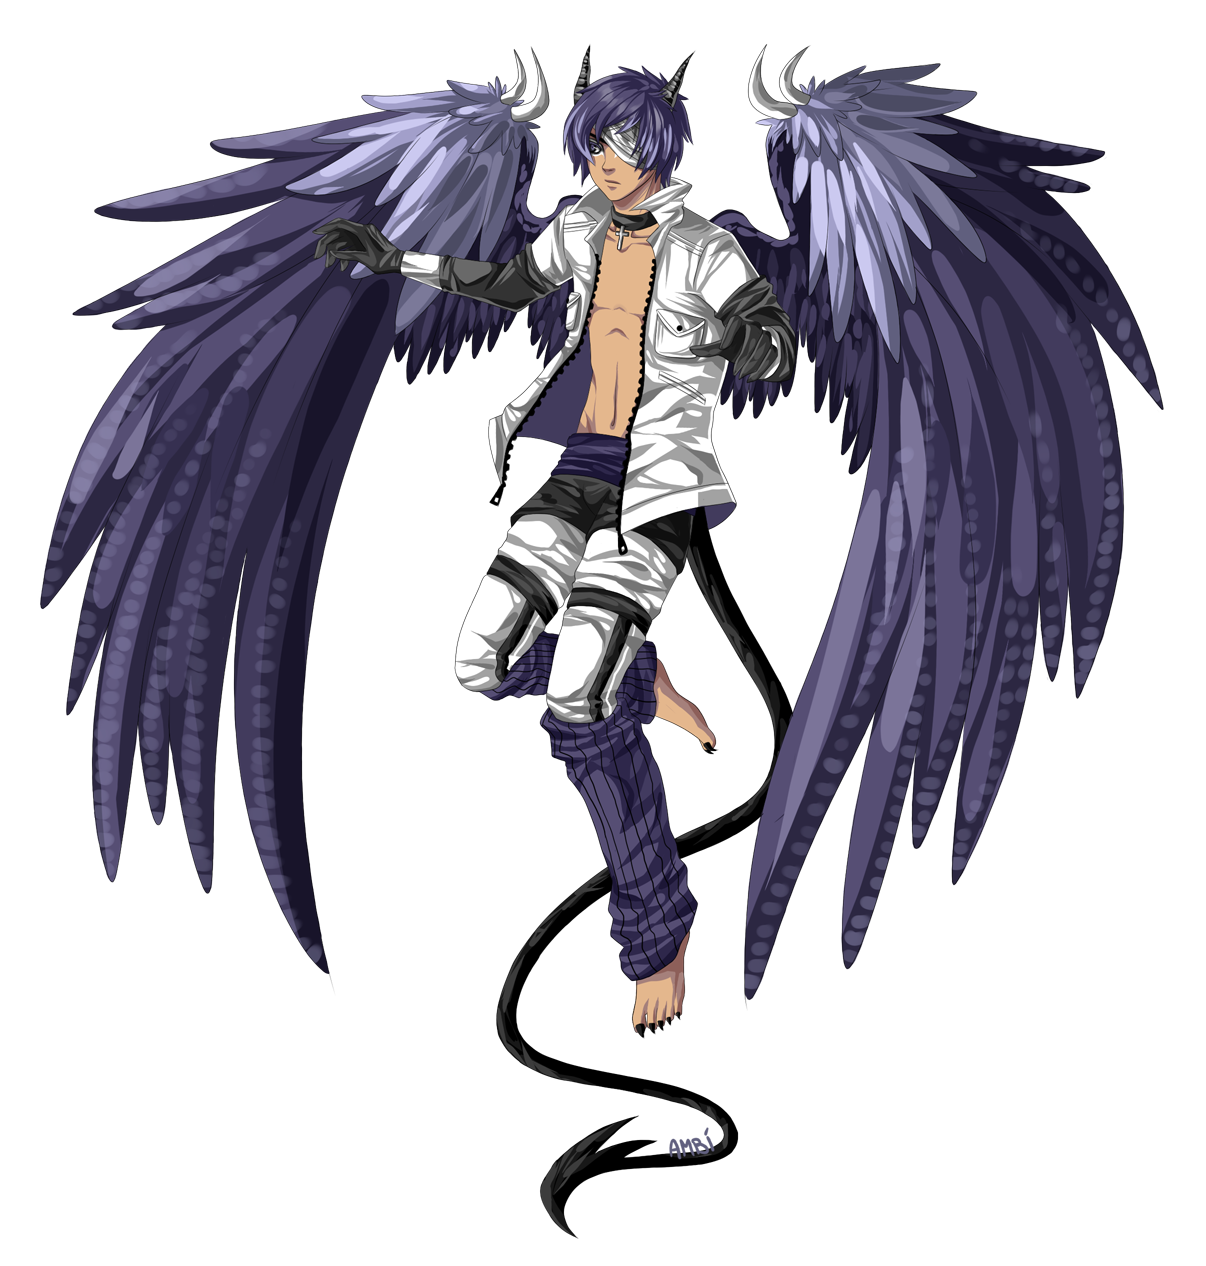 Anime demon boy with wings